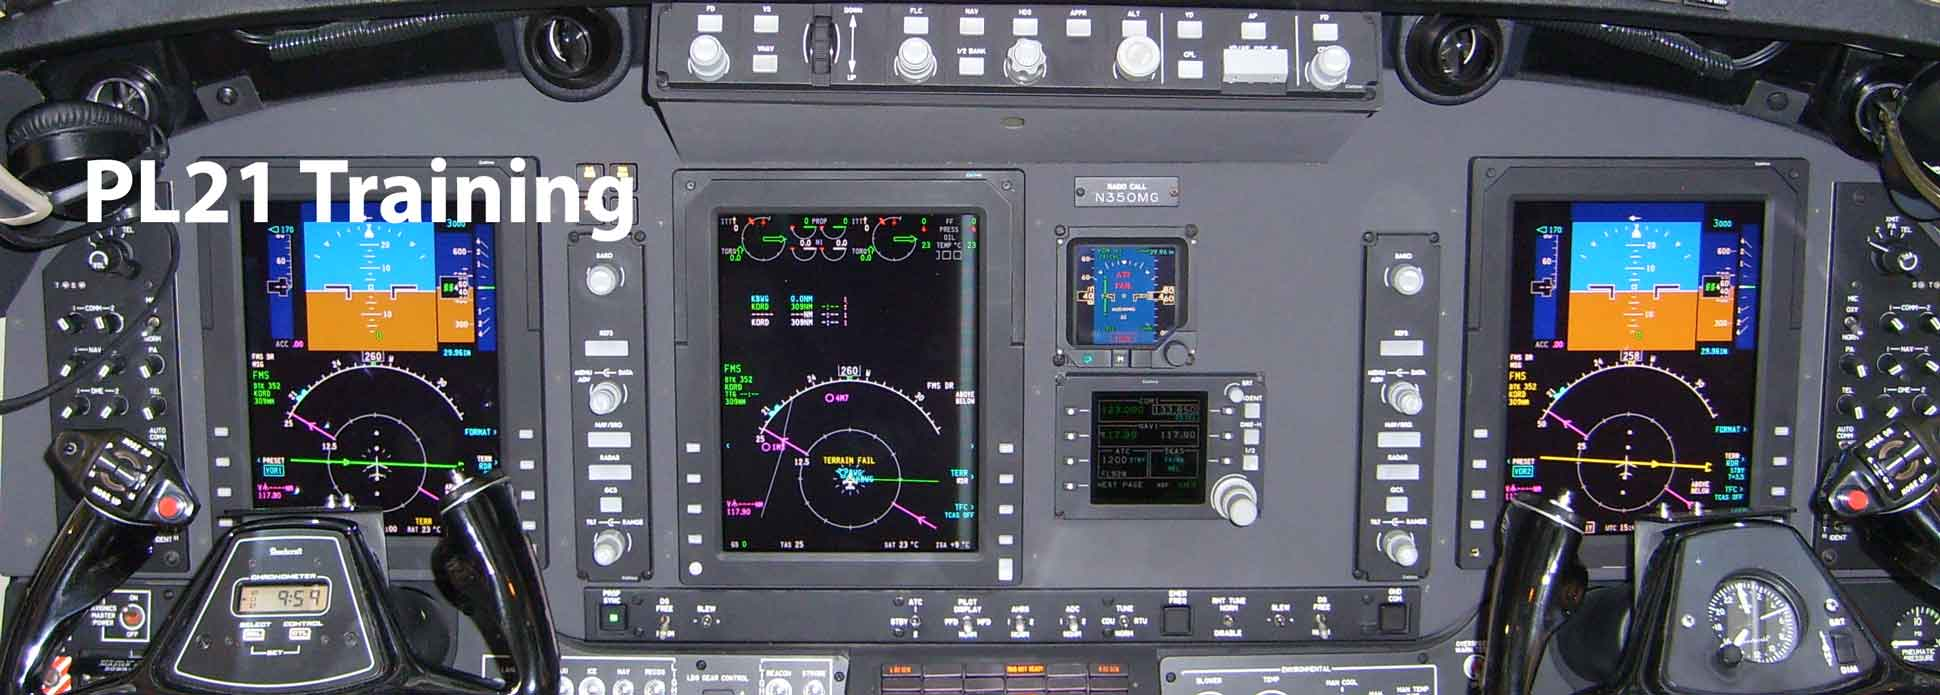 Rockwell Collins Building trust every day. Read Proline User Manual ...